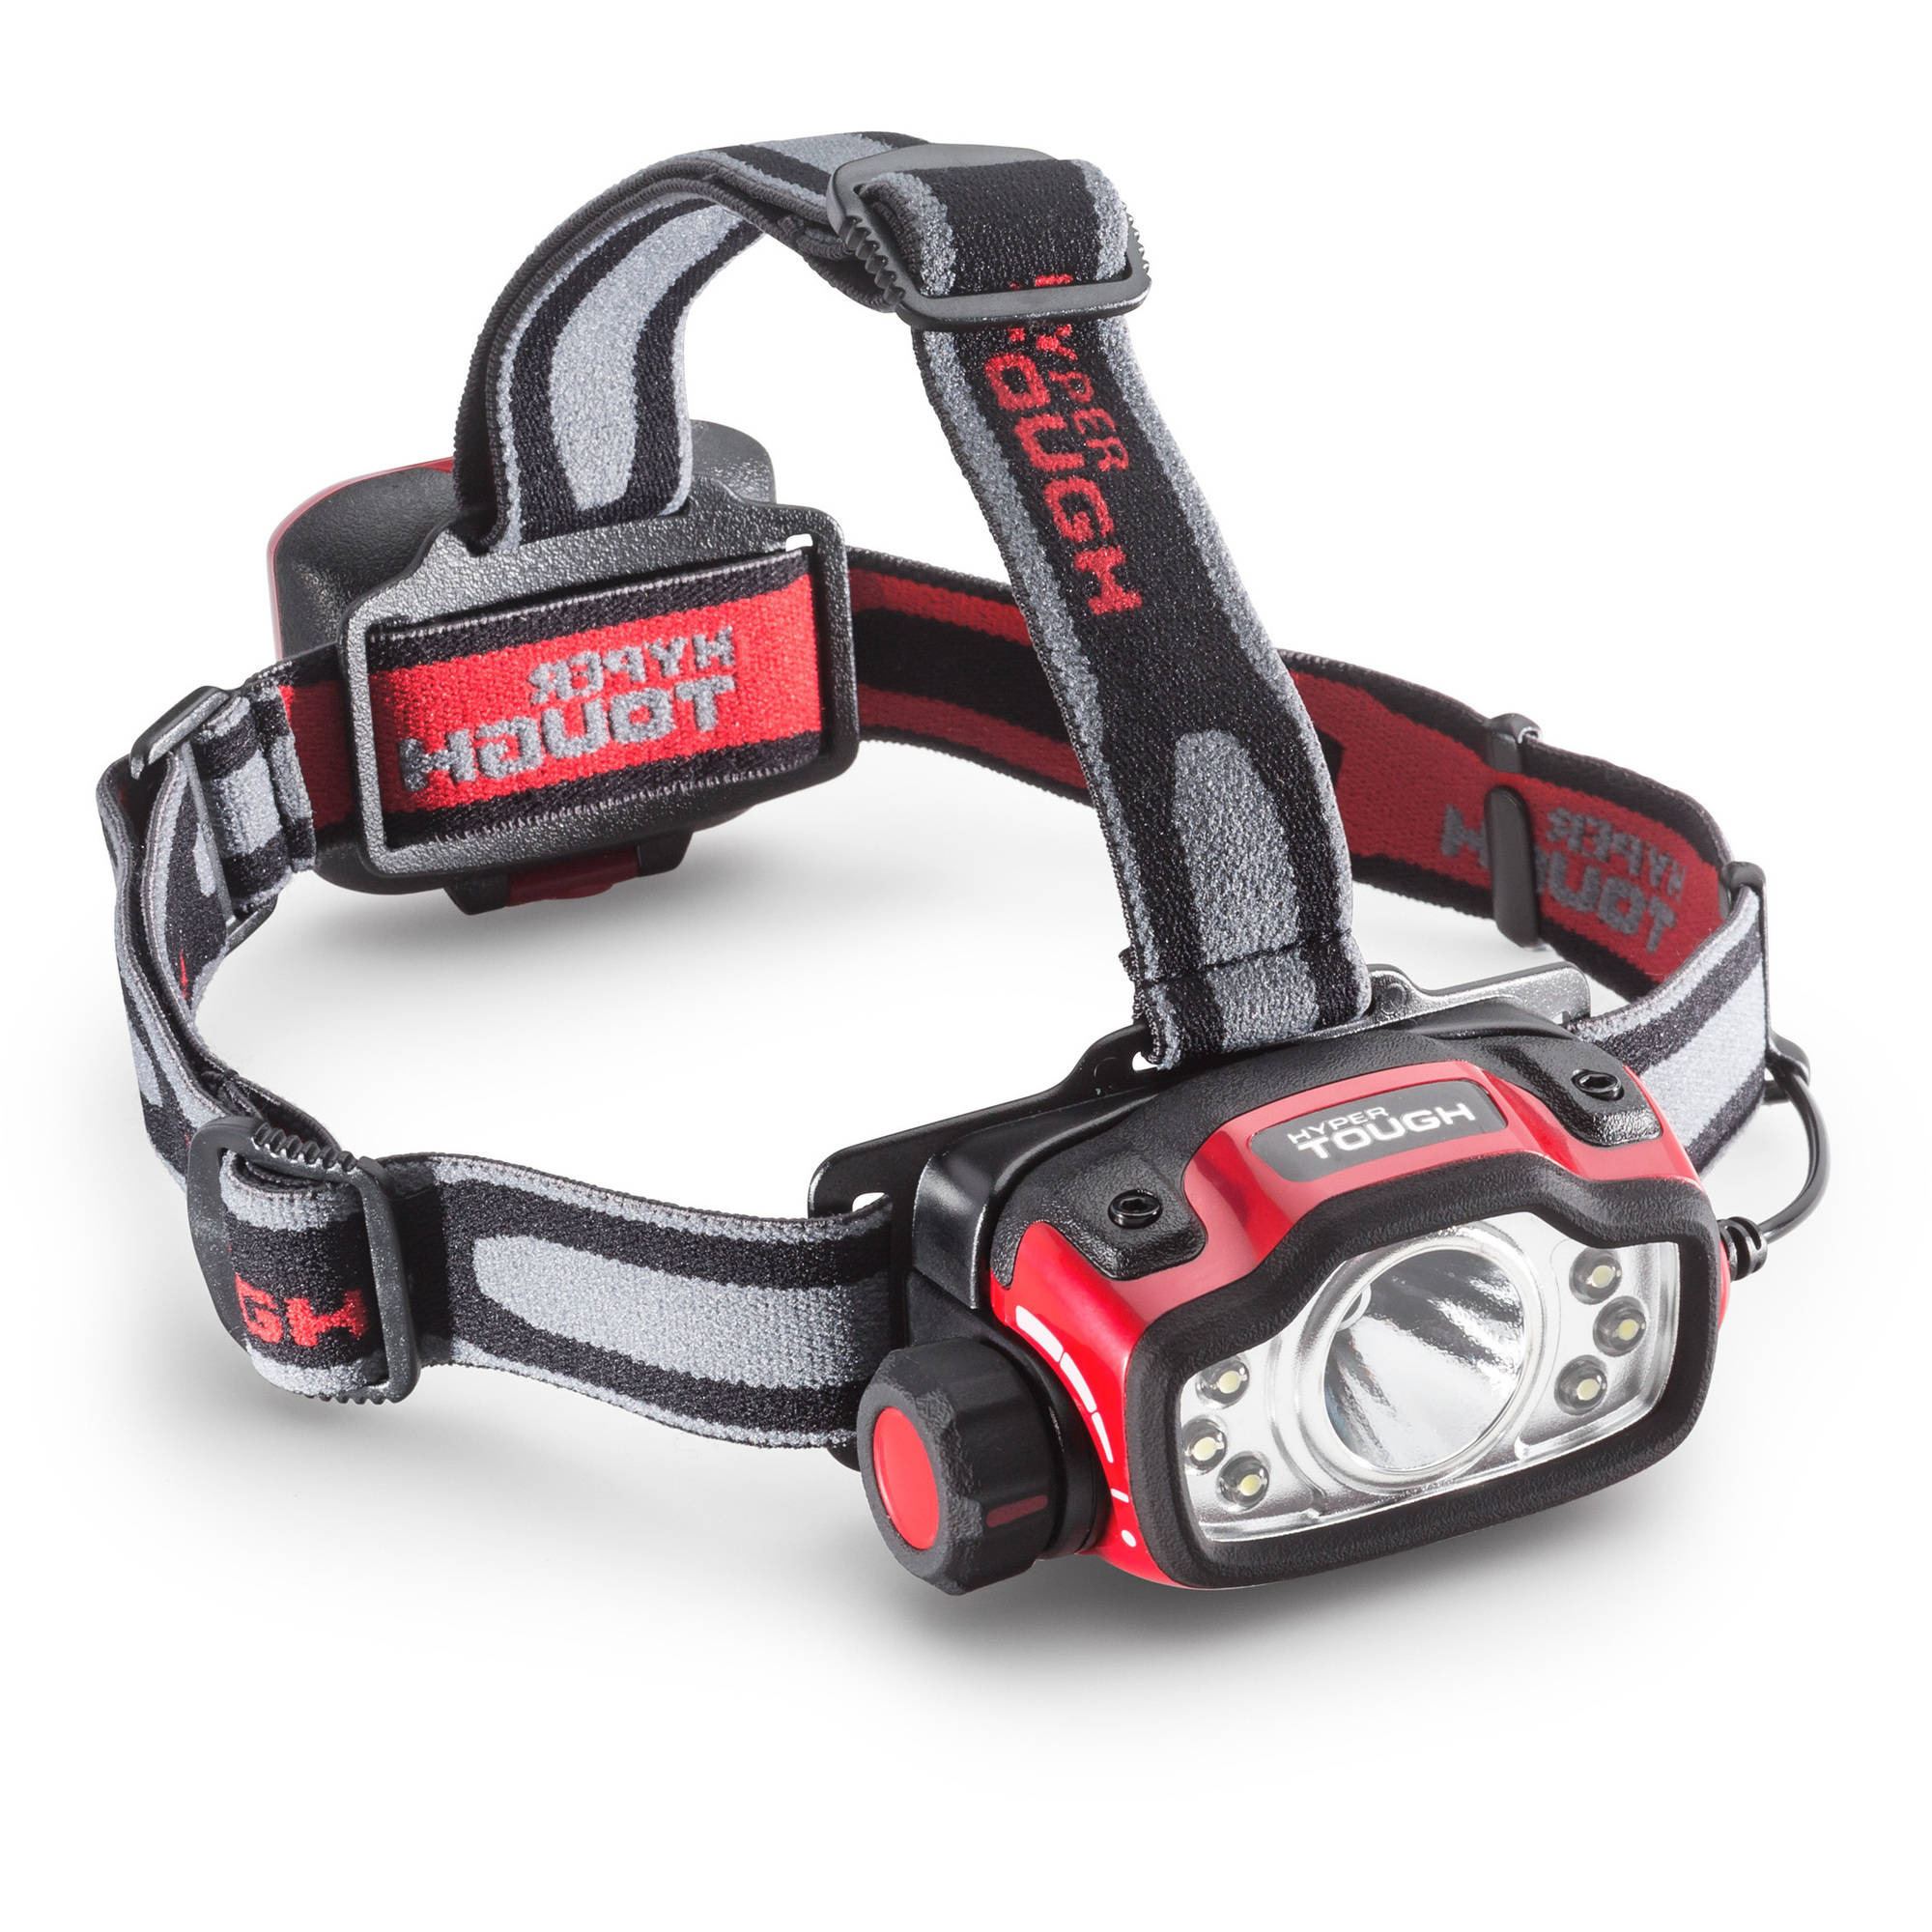 Hyper Tough 3 Aa 200 Lumen Headlamp Walmart Com